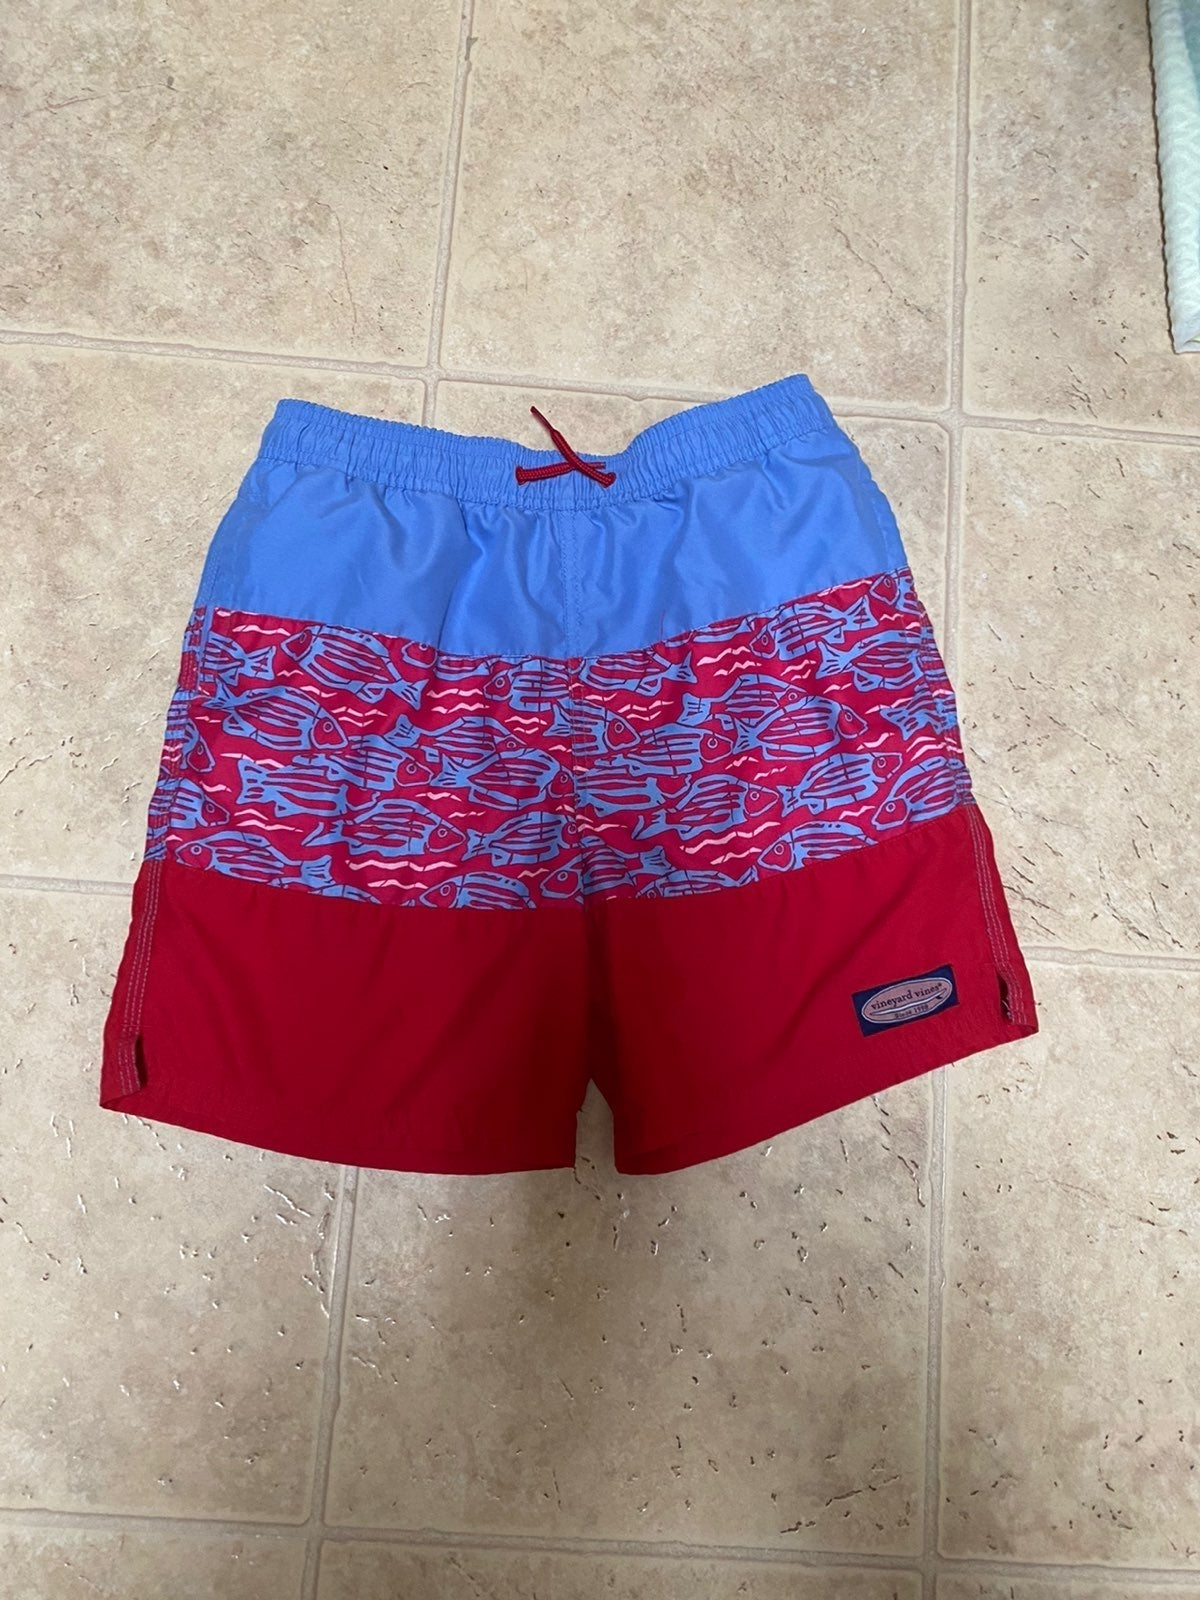 Vineyard Vines Swim Shorts